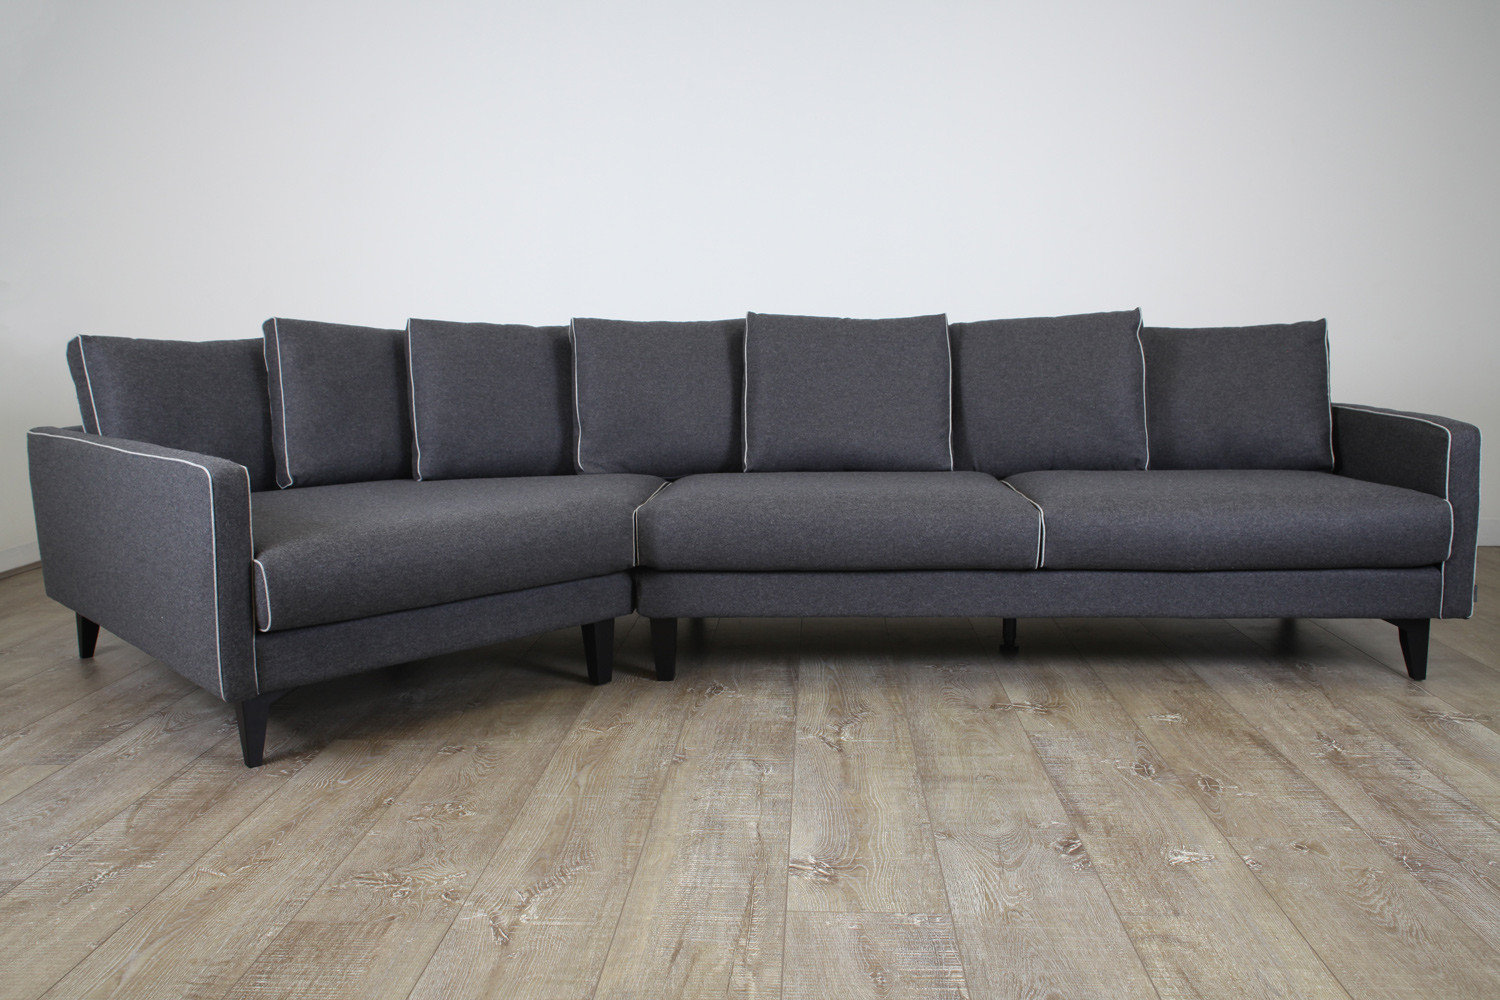 Camille-Sofa-Dark-Grey-the-rug-collection-02